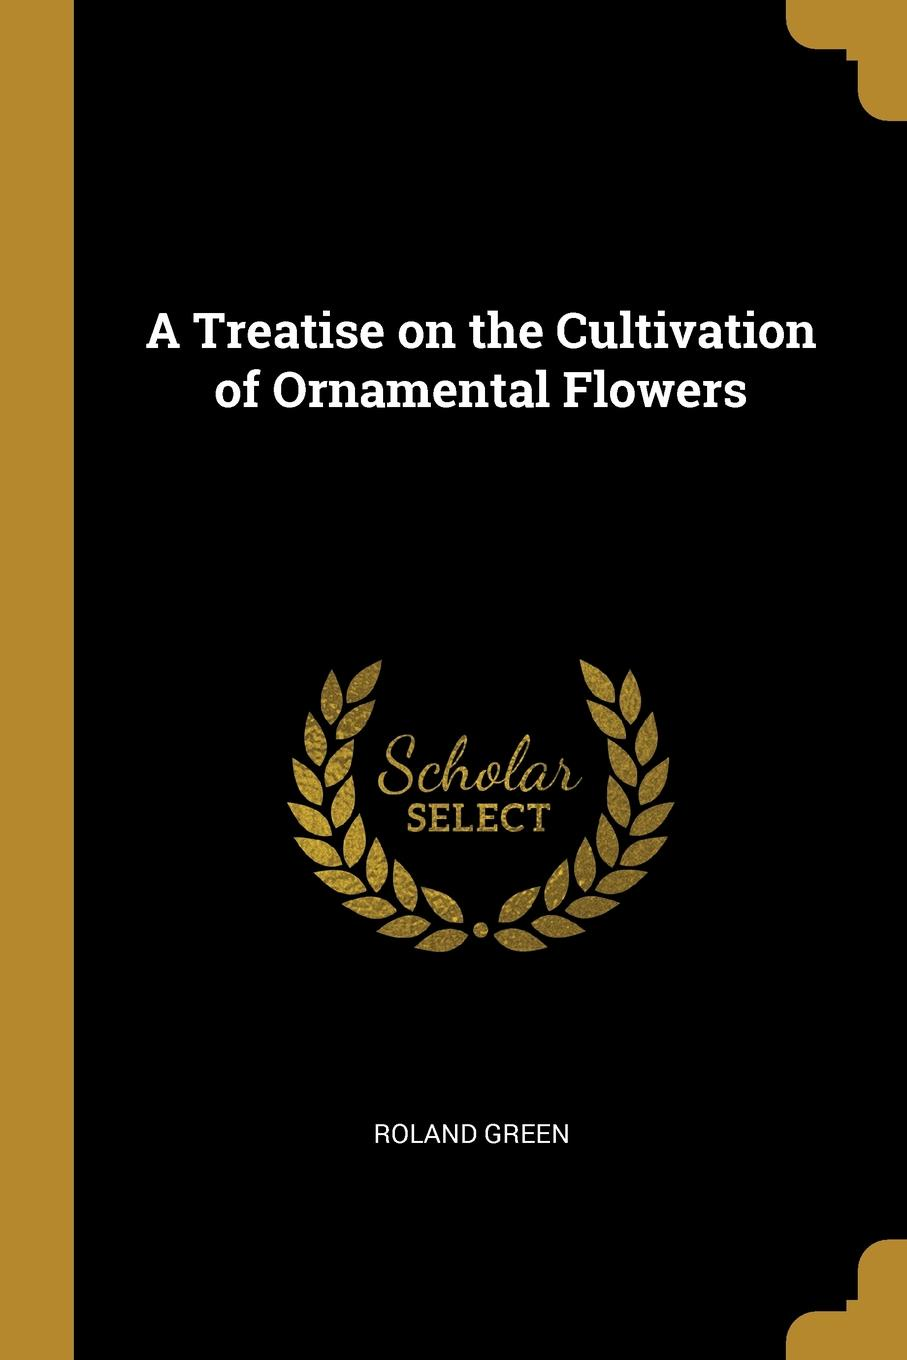 Roland Green. A Treatise on the Cultivation of Ornamental Flowers